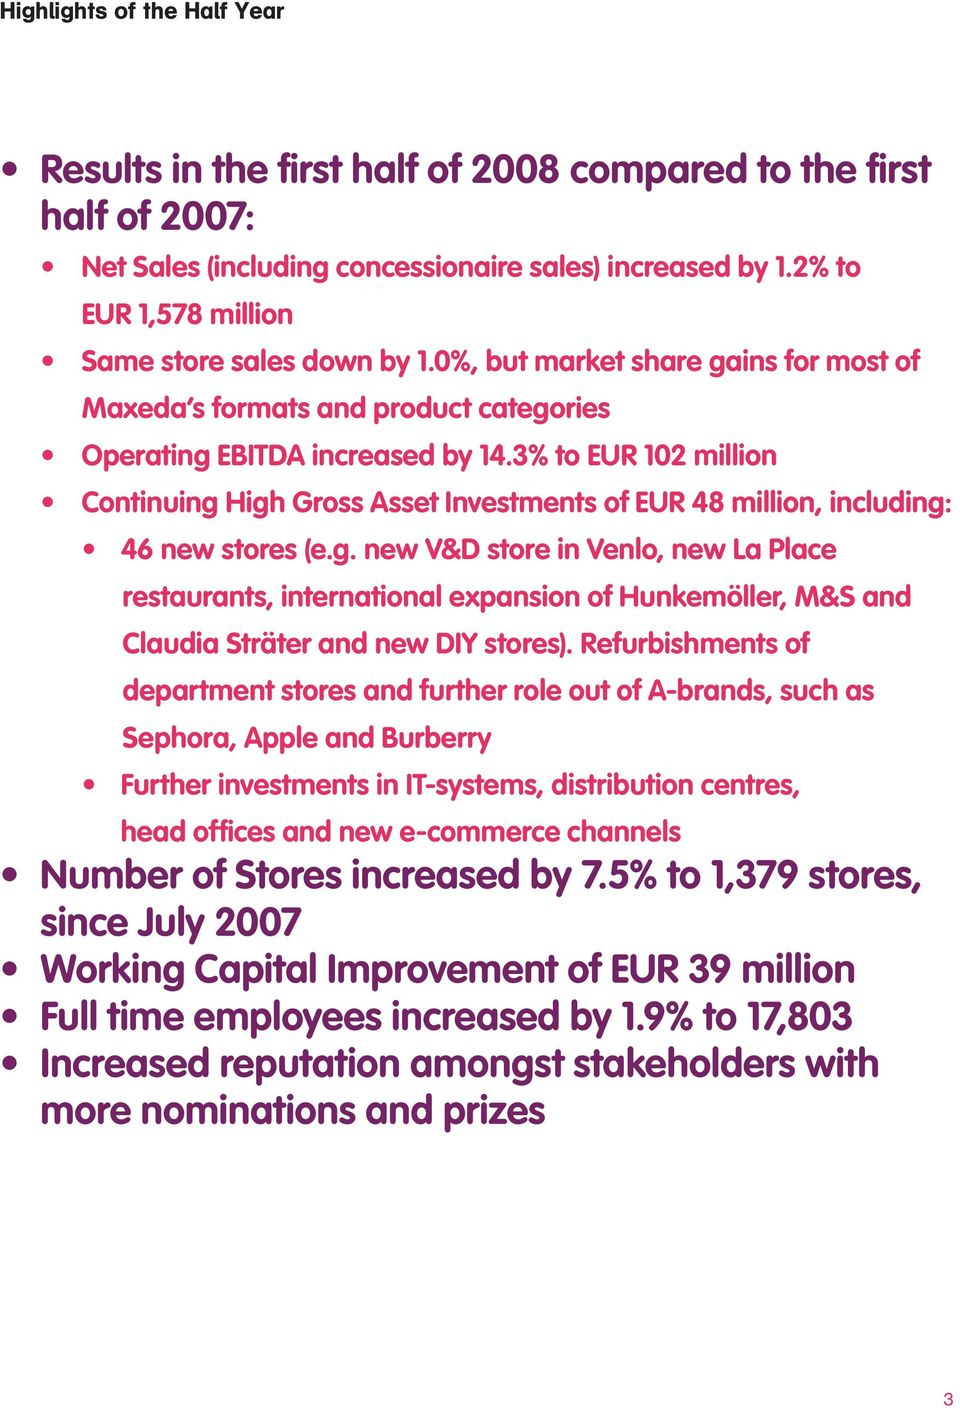 3% to EUR 102 million Continuing High Gross Asset Investments of EUR 48 million, including: 46 new stores (e.g. new V&D store in Venlo, new La Place restaurants, international expansion of Hunkemöller, M&S and Claudia Sträter and new DIY stores).